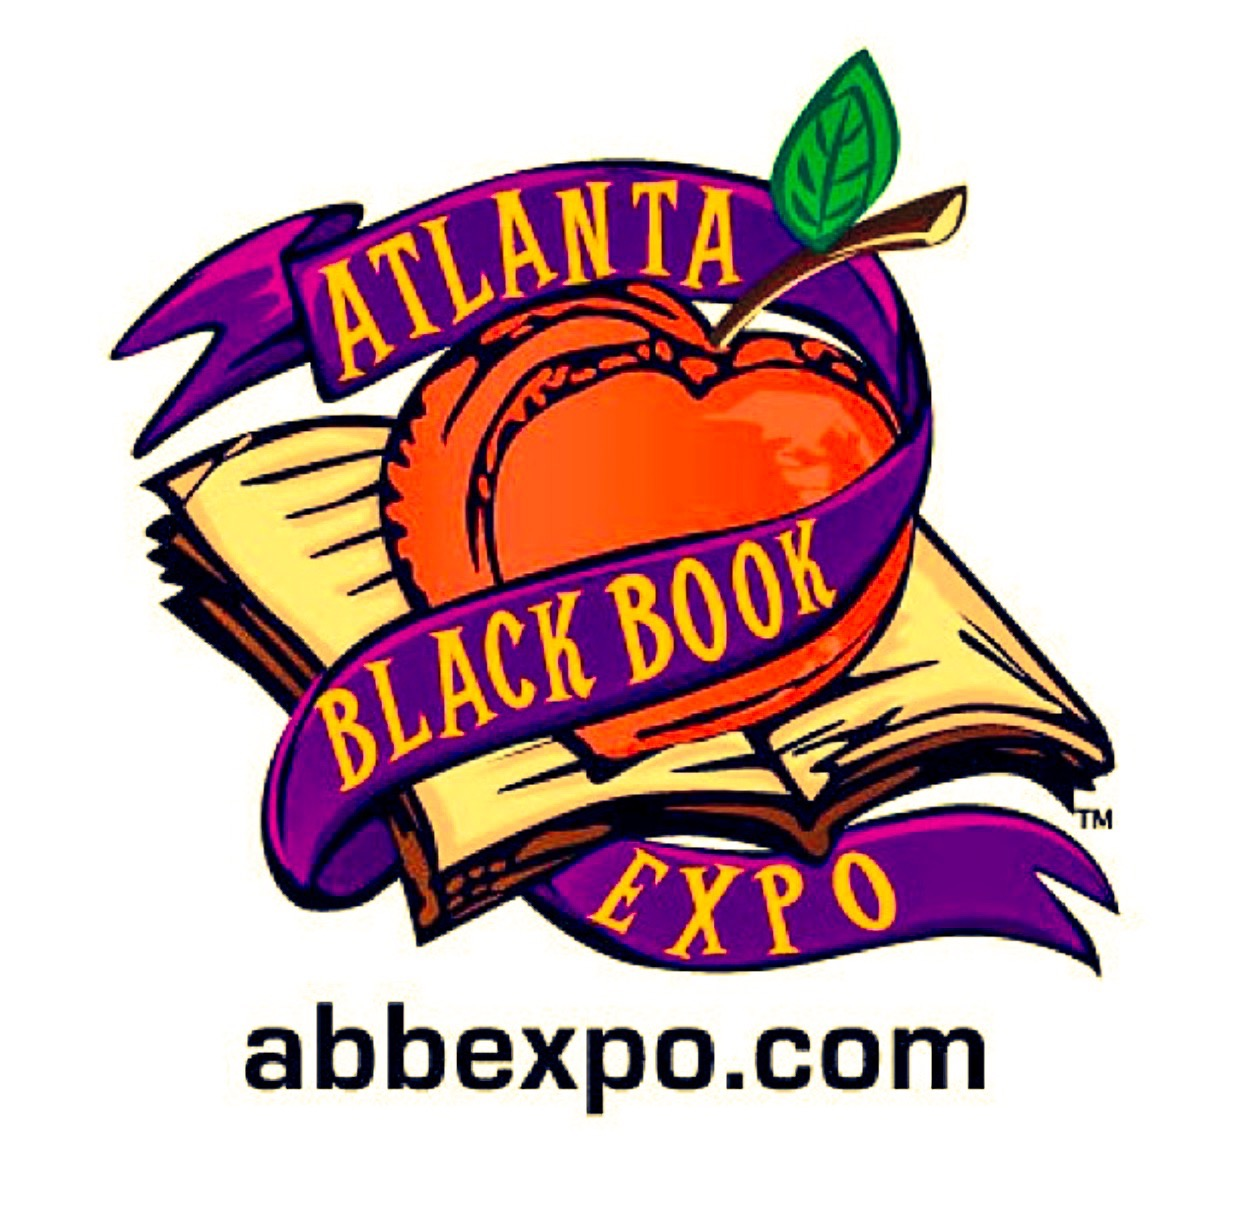 Atlanta Black Book Expo